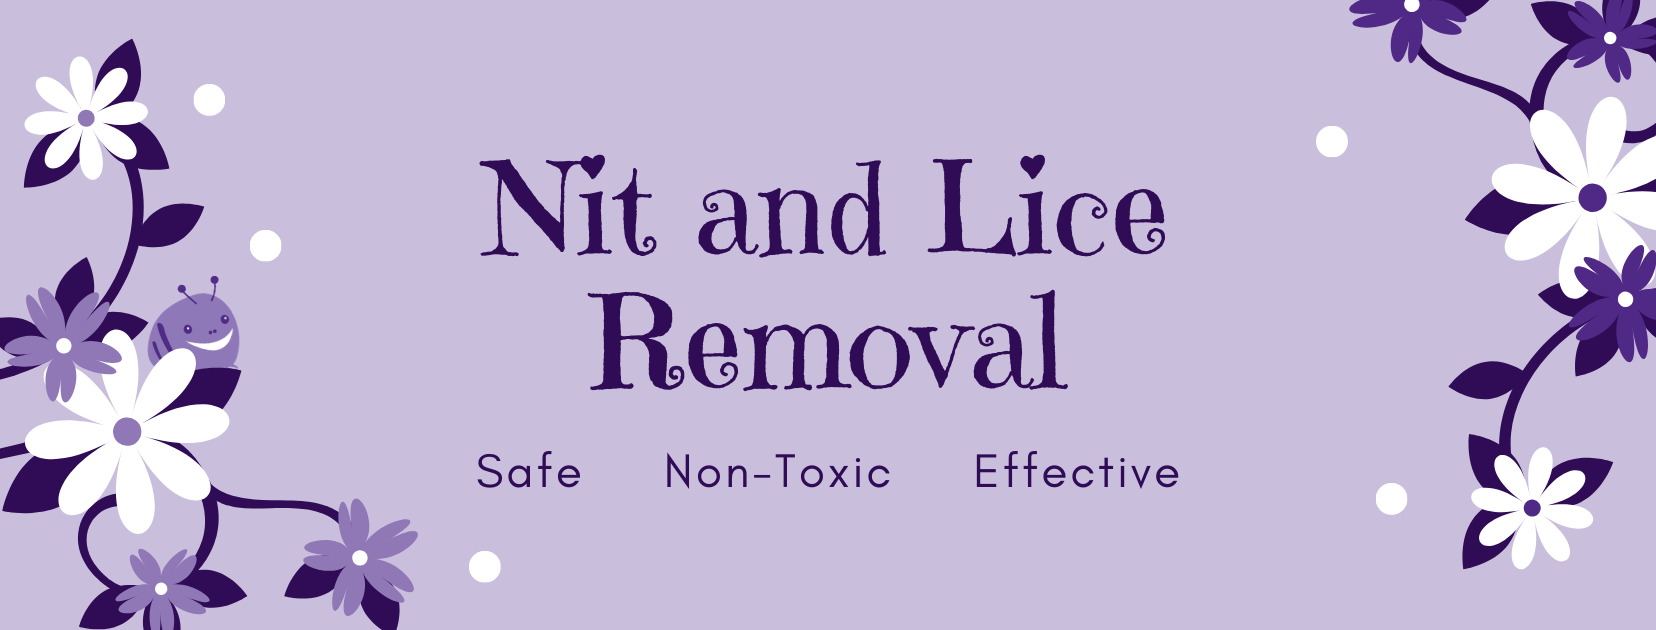 Nit Removal Lice Removal